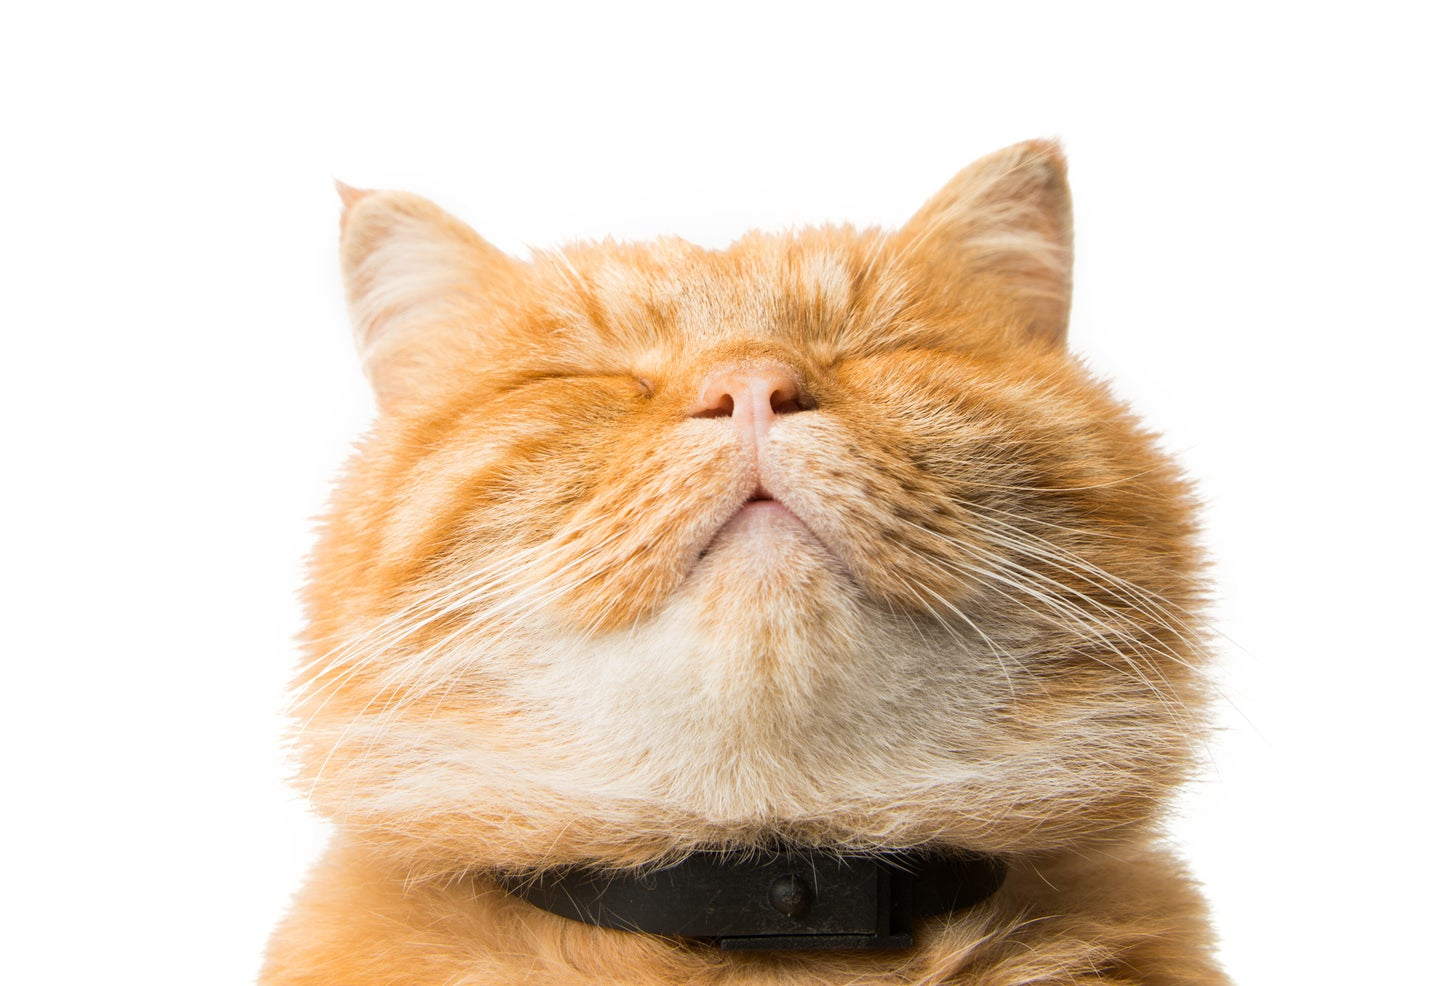 A ginger cat with its eyes closed and chin tucked up